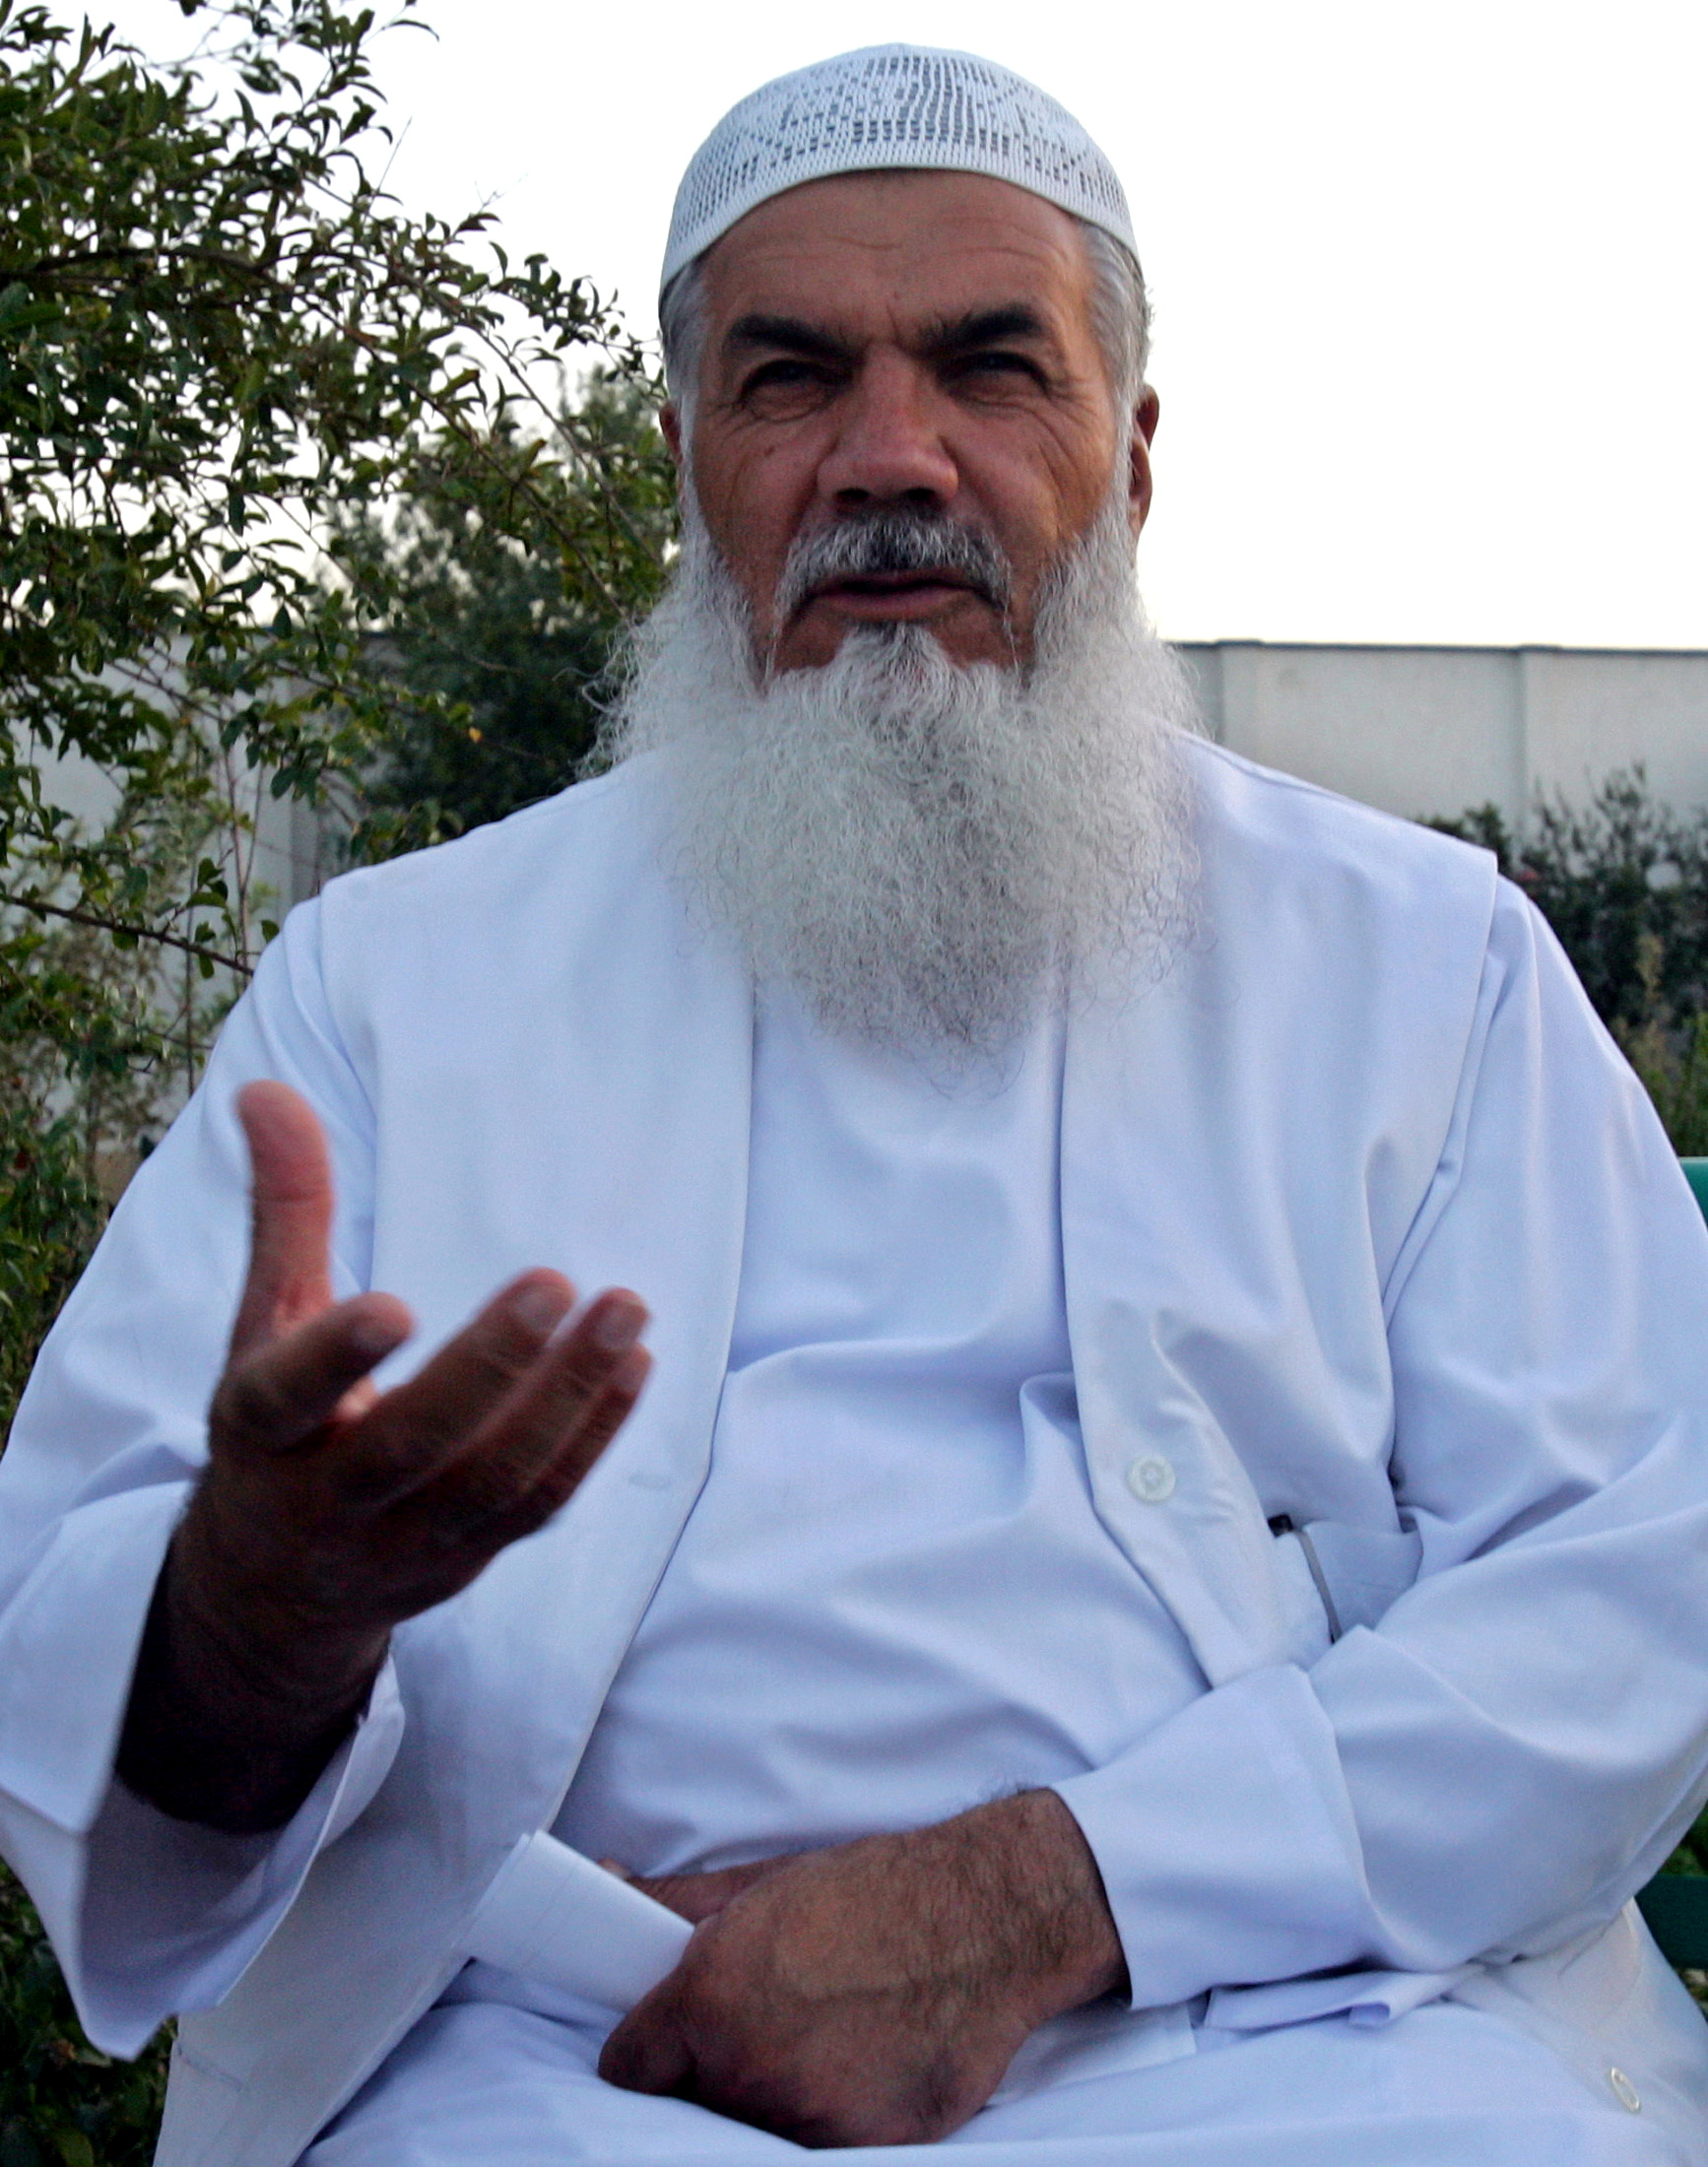 Ismail Khan, the militia commander and former governor of the western Afghan city of Herat, speaks during an interview with Reuters at his Herat residence, September 29, 2004. Ahmad Masood/REUTERS/File Photo